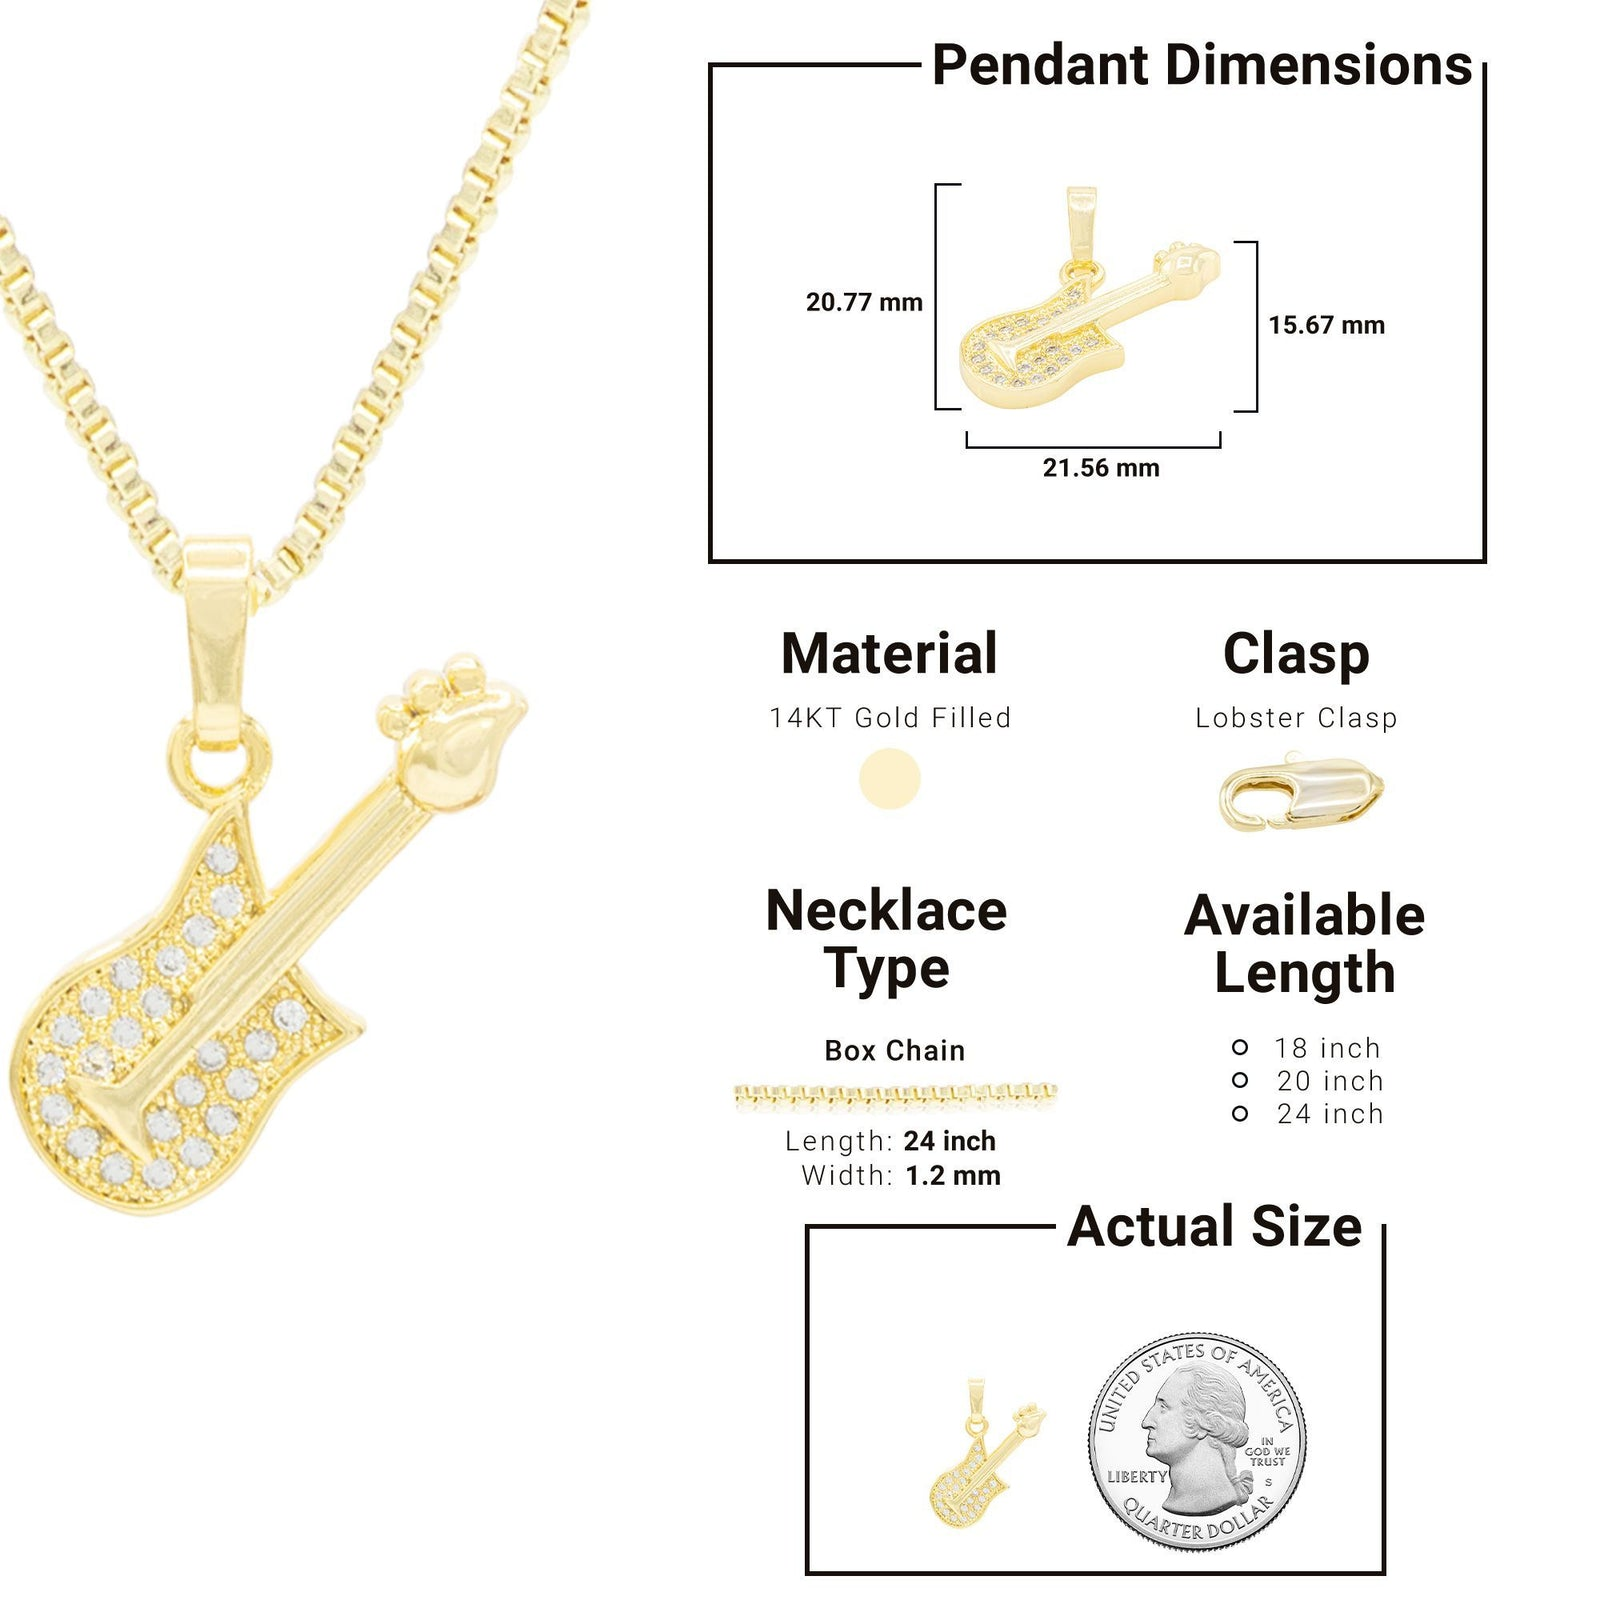 Rock Guitar Cubic Zirconia Pendant With Necklace Set 14K Gold Filled